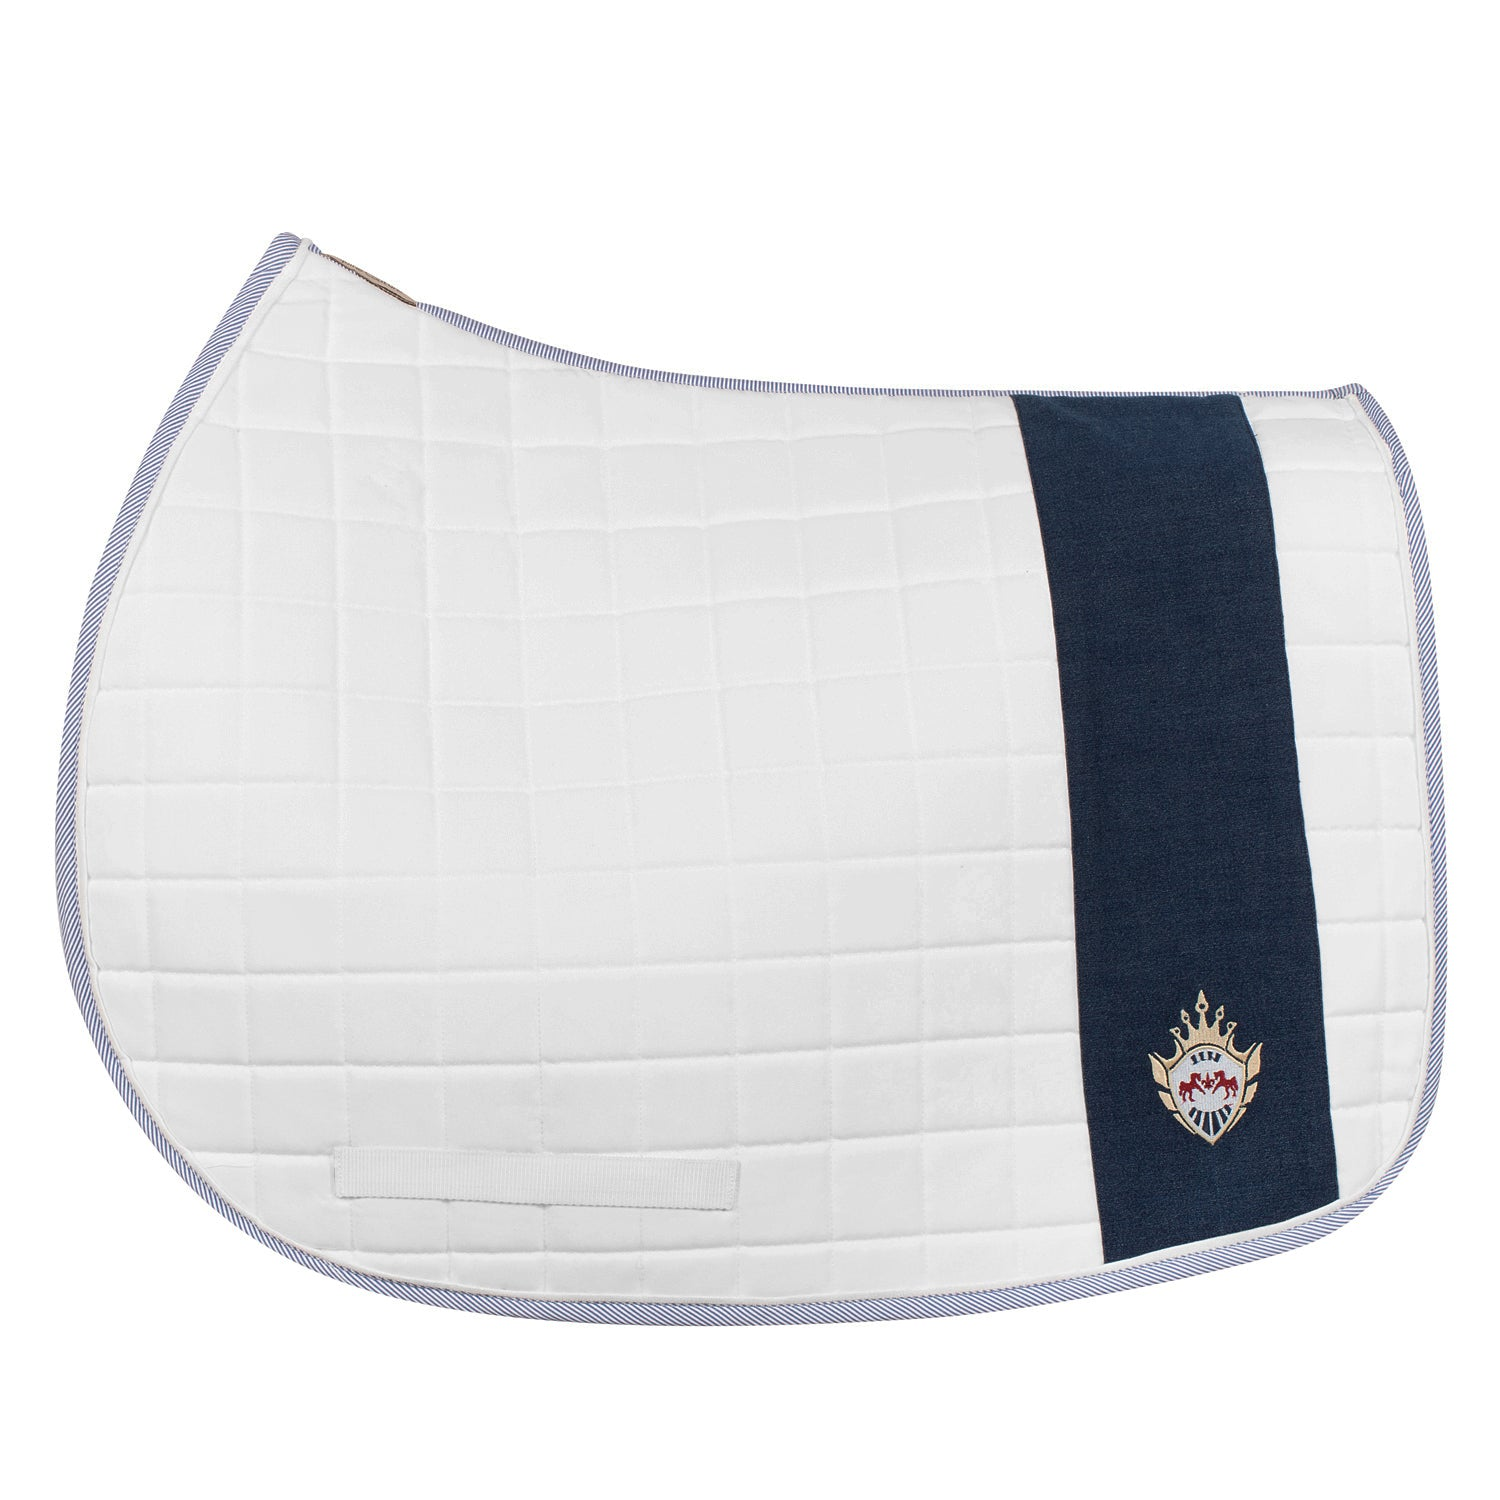 Equine Couture Jayden All Purpose Saddle Pad_1803